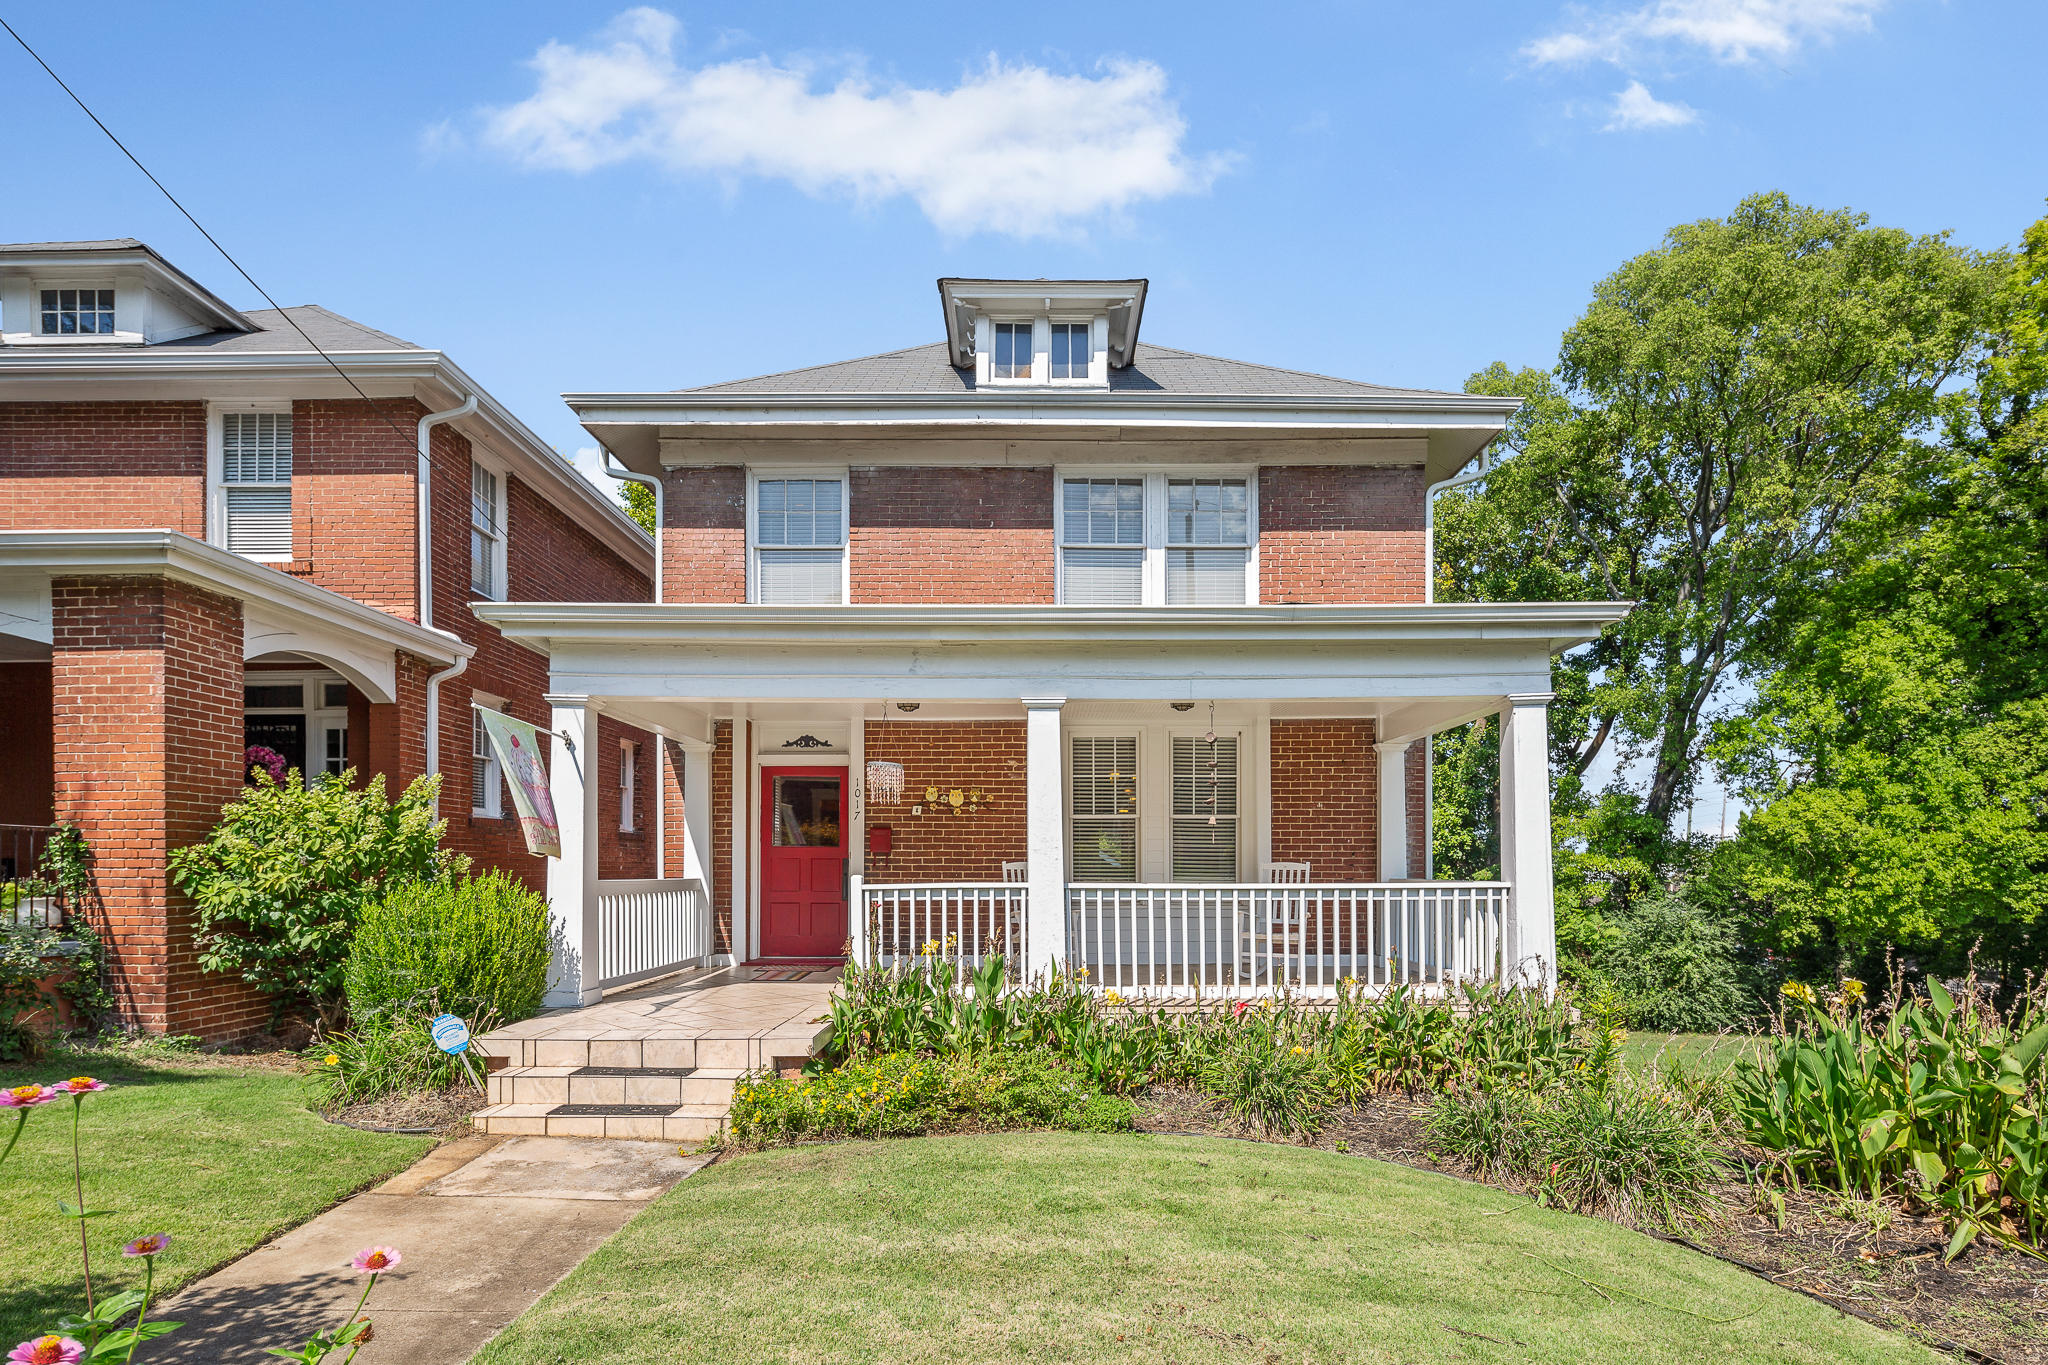 1017 E Ml King  Blvd 37403 - One of Chattanooga Homes for Sale